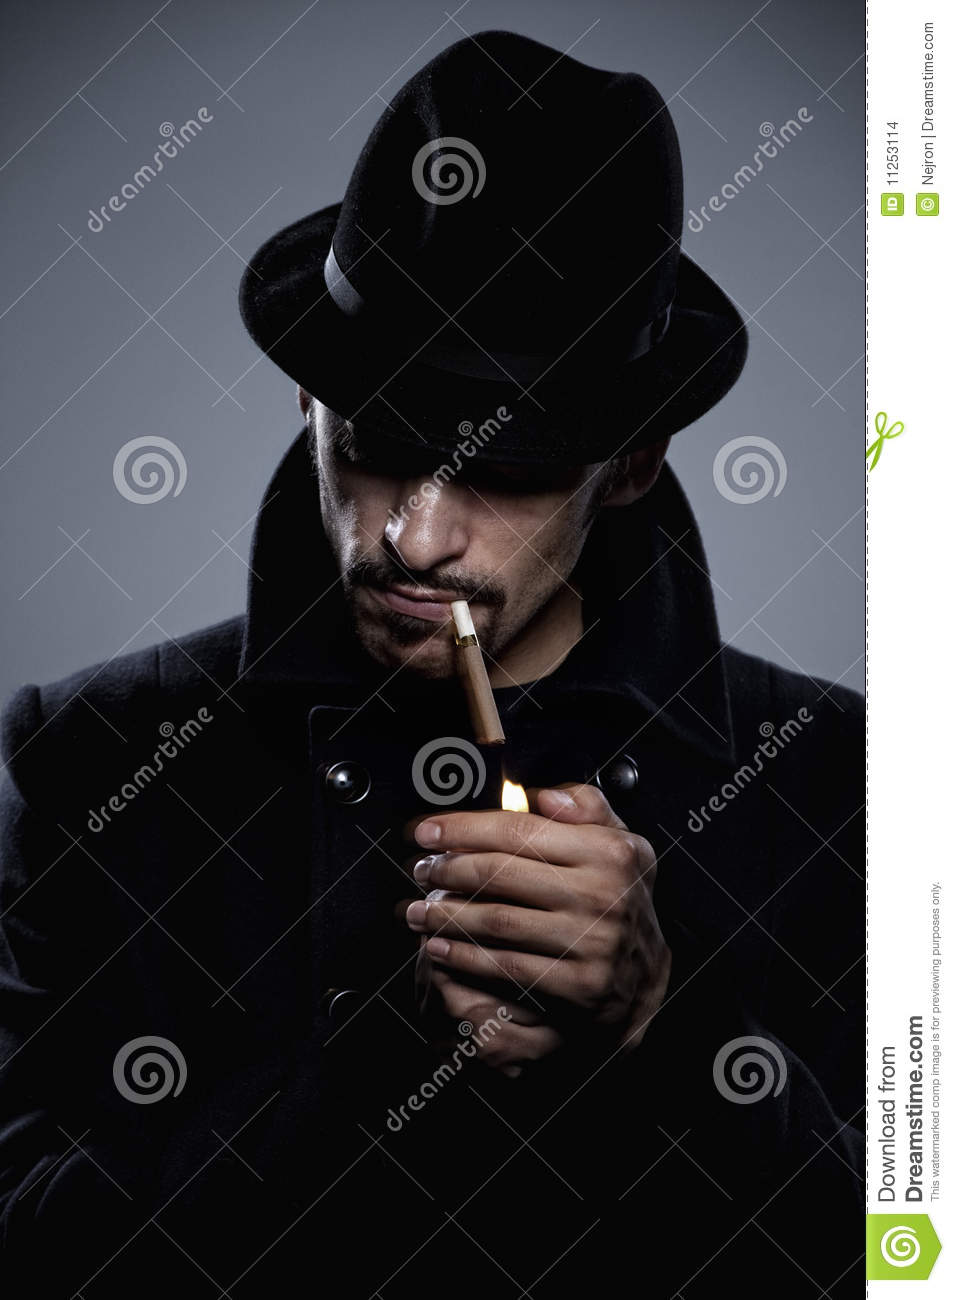 Bad Credit Credit Cards >> Mysterious Man Lighting A Cigarette Stock Images - Image ...